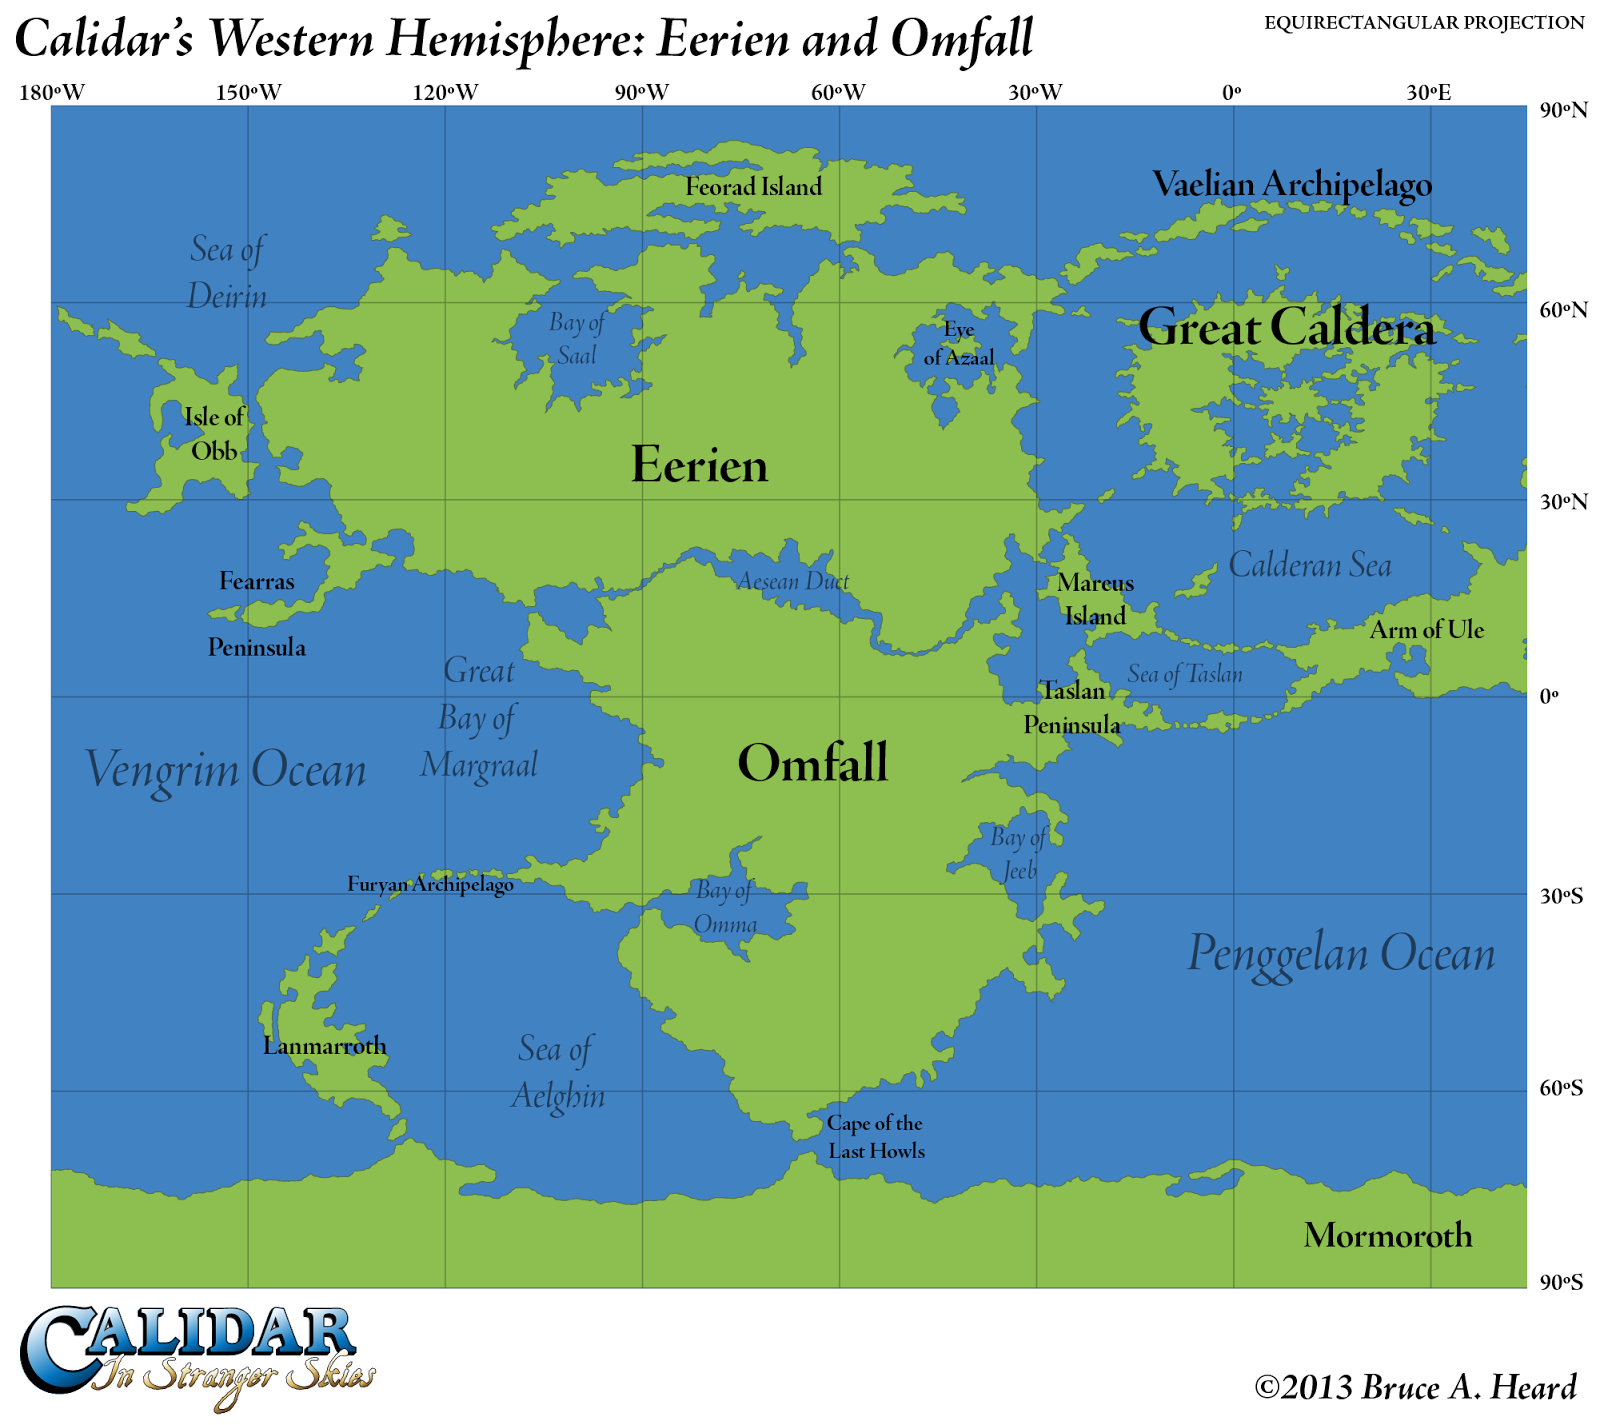 The cartography of thorfinn tait map of the day 17 the western world of calidar western hemisphere equirectangular projection gumiabroncs Gallery